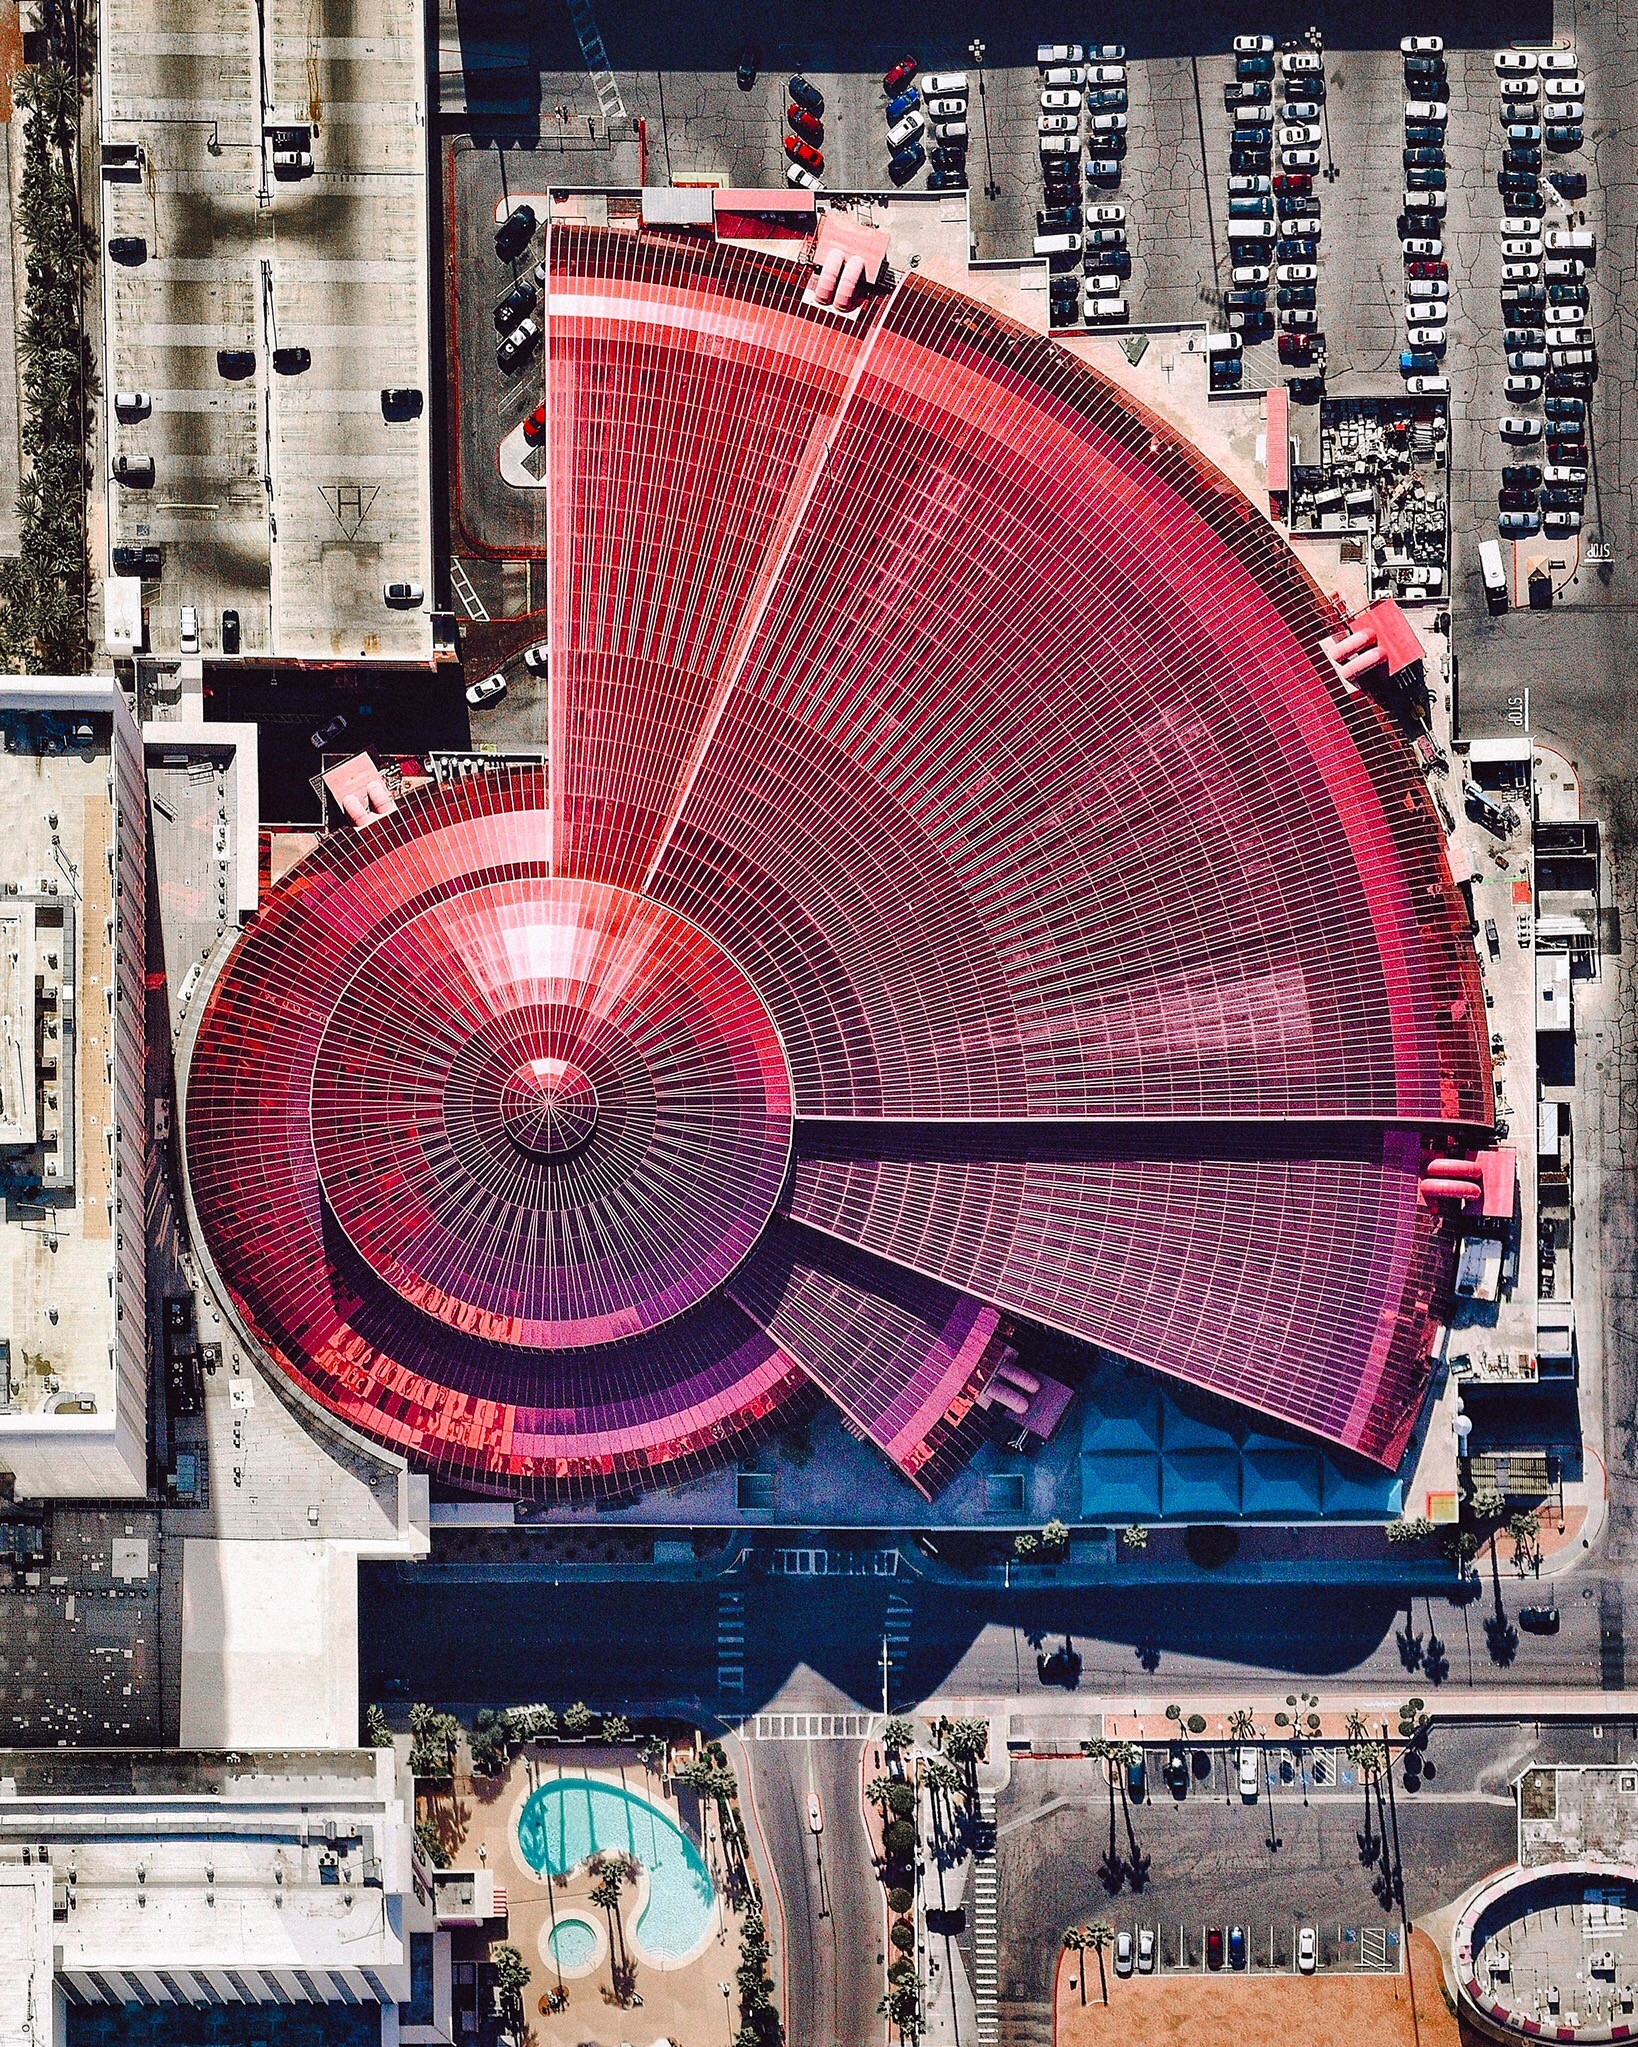 """Adventuredome is a five-acre indoor amusement park on the Las Vegas Strip in Nevada, USA. The facility's main structure consists of more than 350,000 square feet of pink insulated glass. Inside are two roller coasters, a water ride, rock climbing wall, 18-hole miniature golf course and dozens of carnival games.  36°08'17.0""""N, 115°10'02.6""""W  Source imagery: Nearmap"""